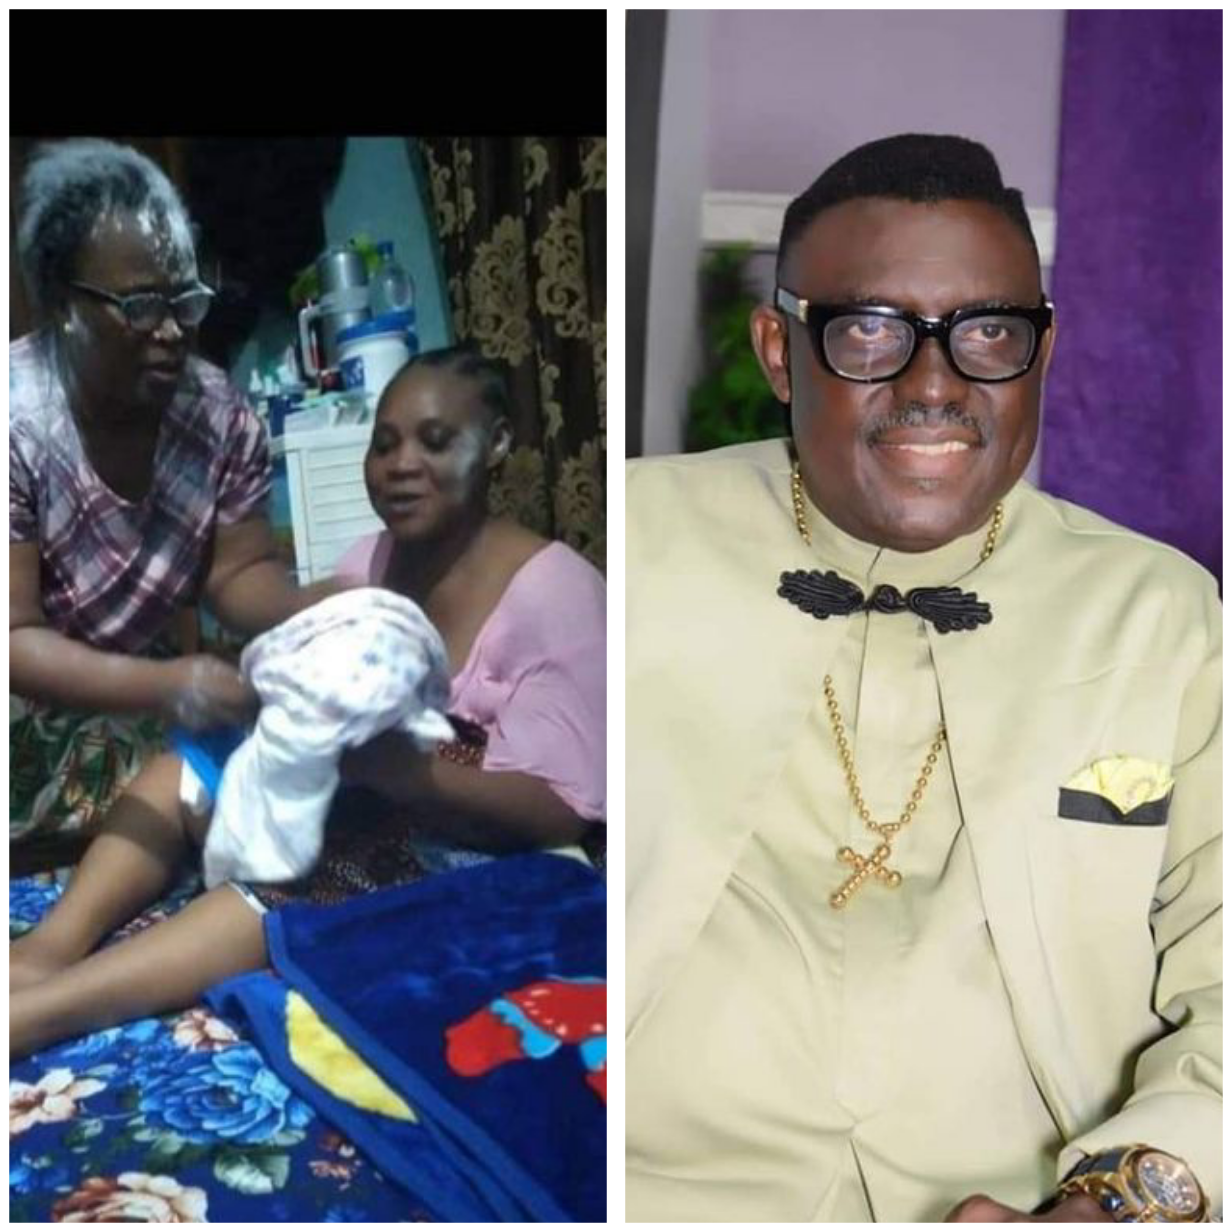 After 27 years of marriage, Nigerian Gospel artiste, Quincy Tebite Dtisio and his wife welcome a baby girl